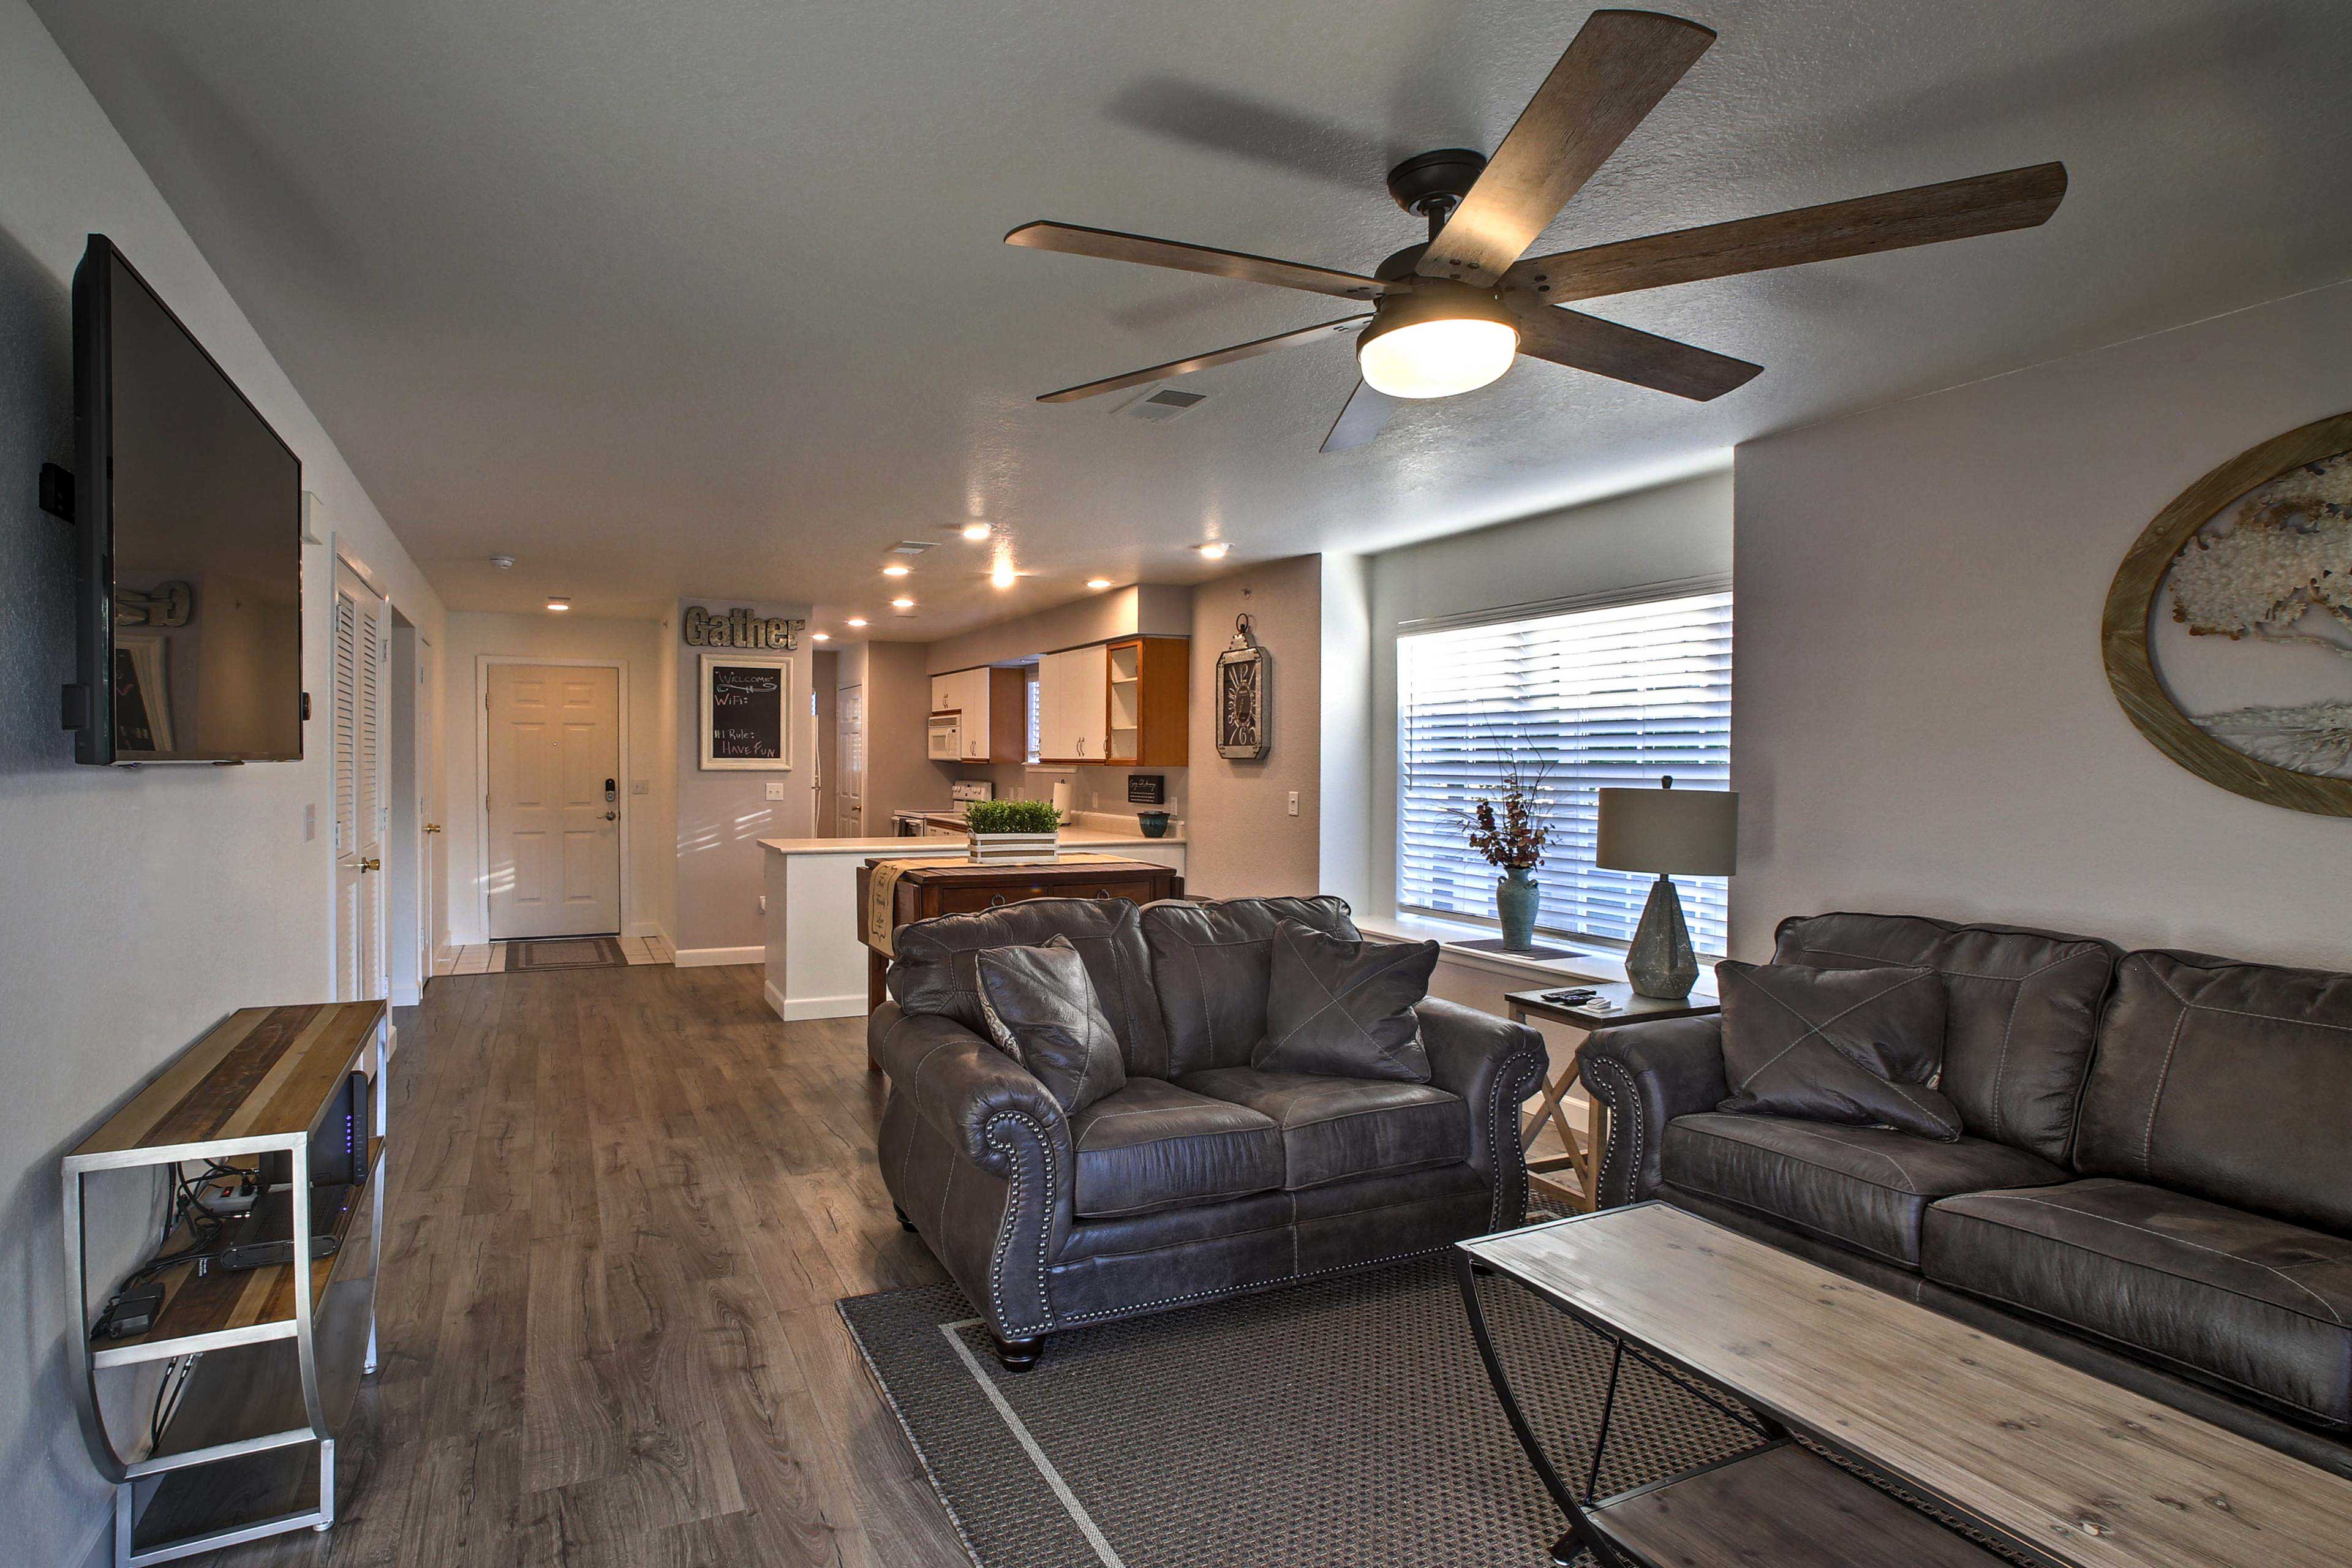 The open-concept layout is great for groups!